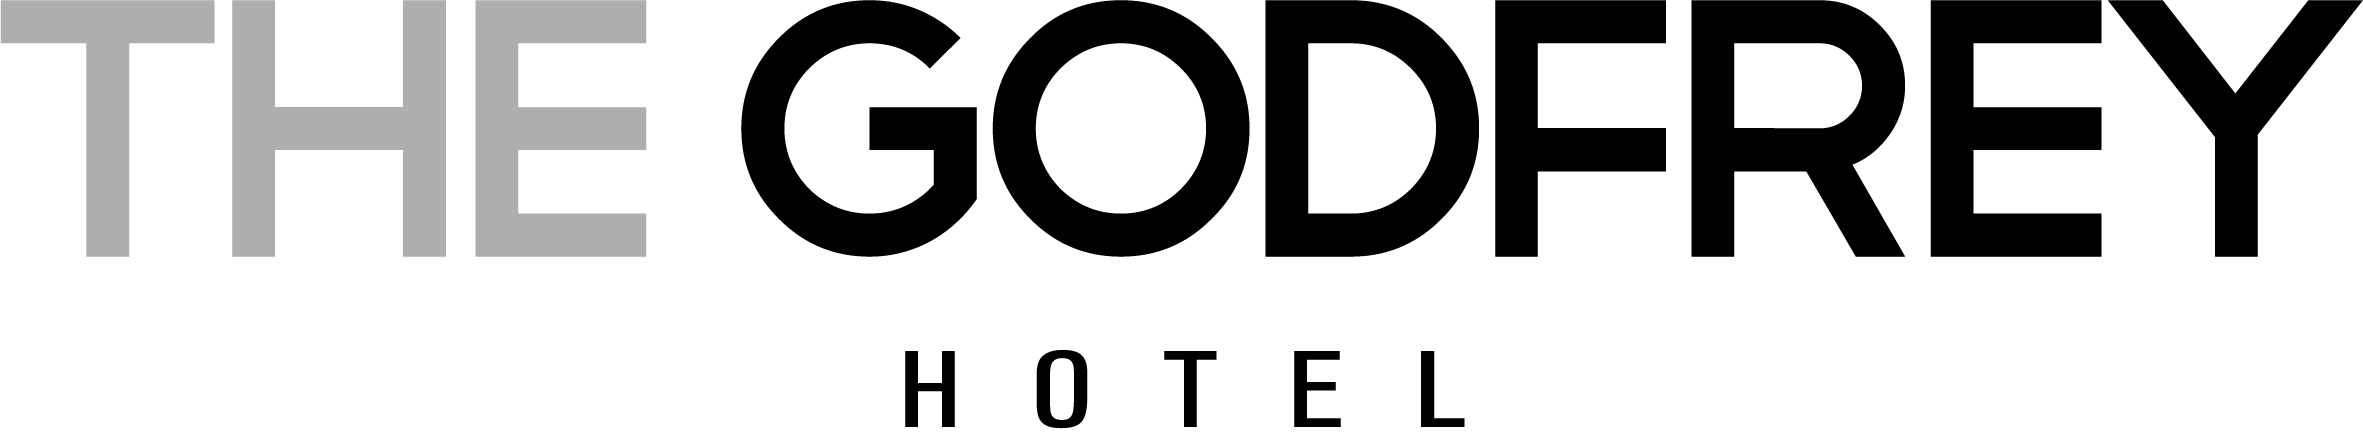 The Godfrey Hotel Logo